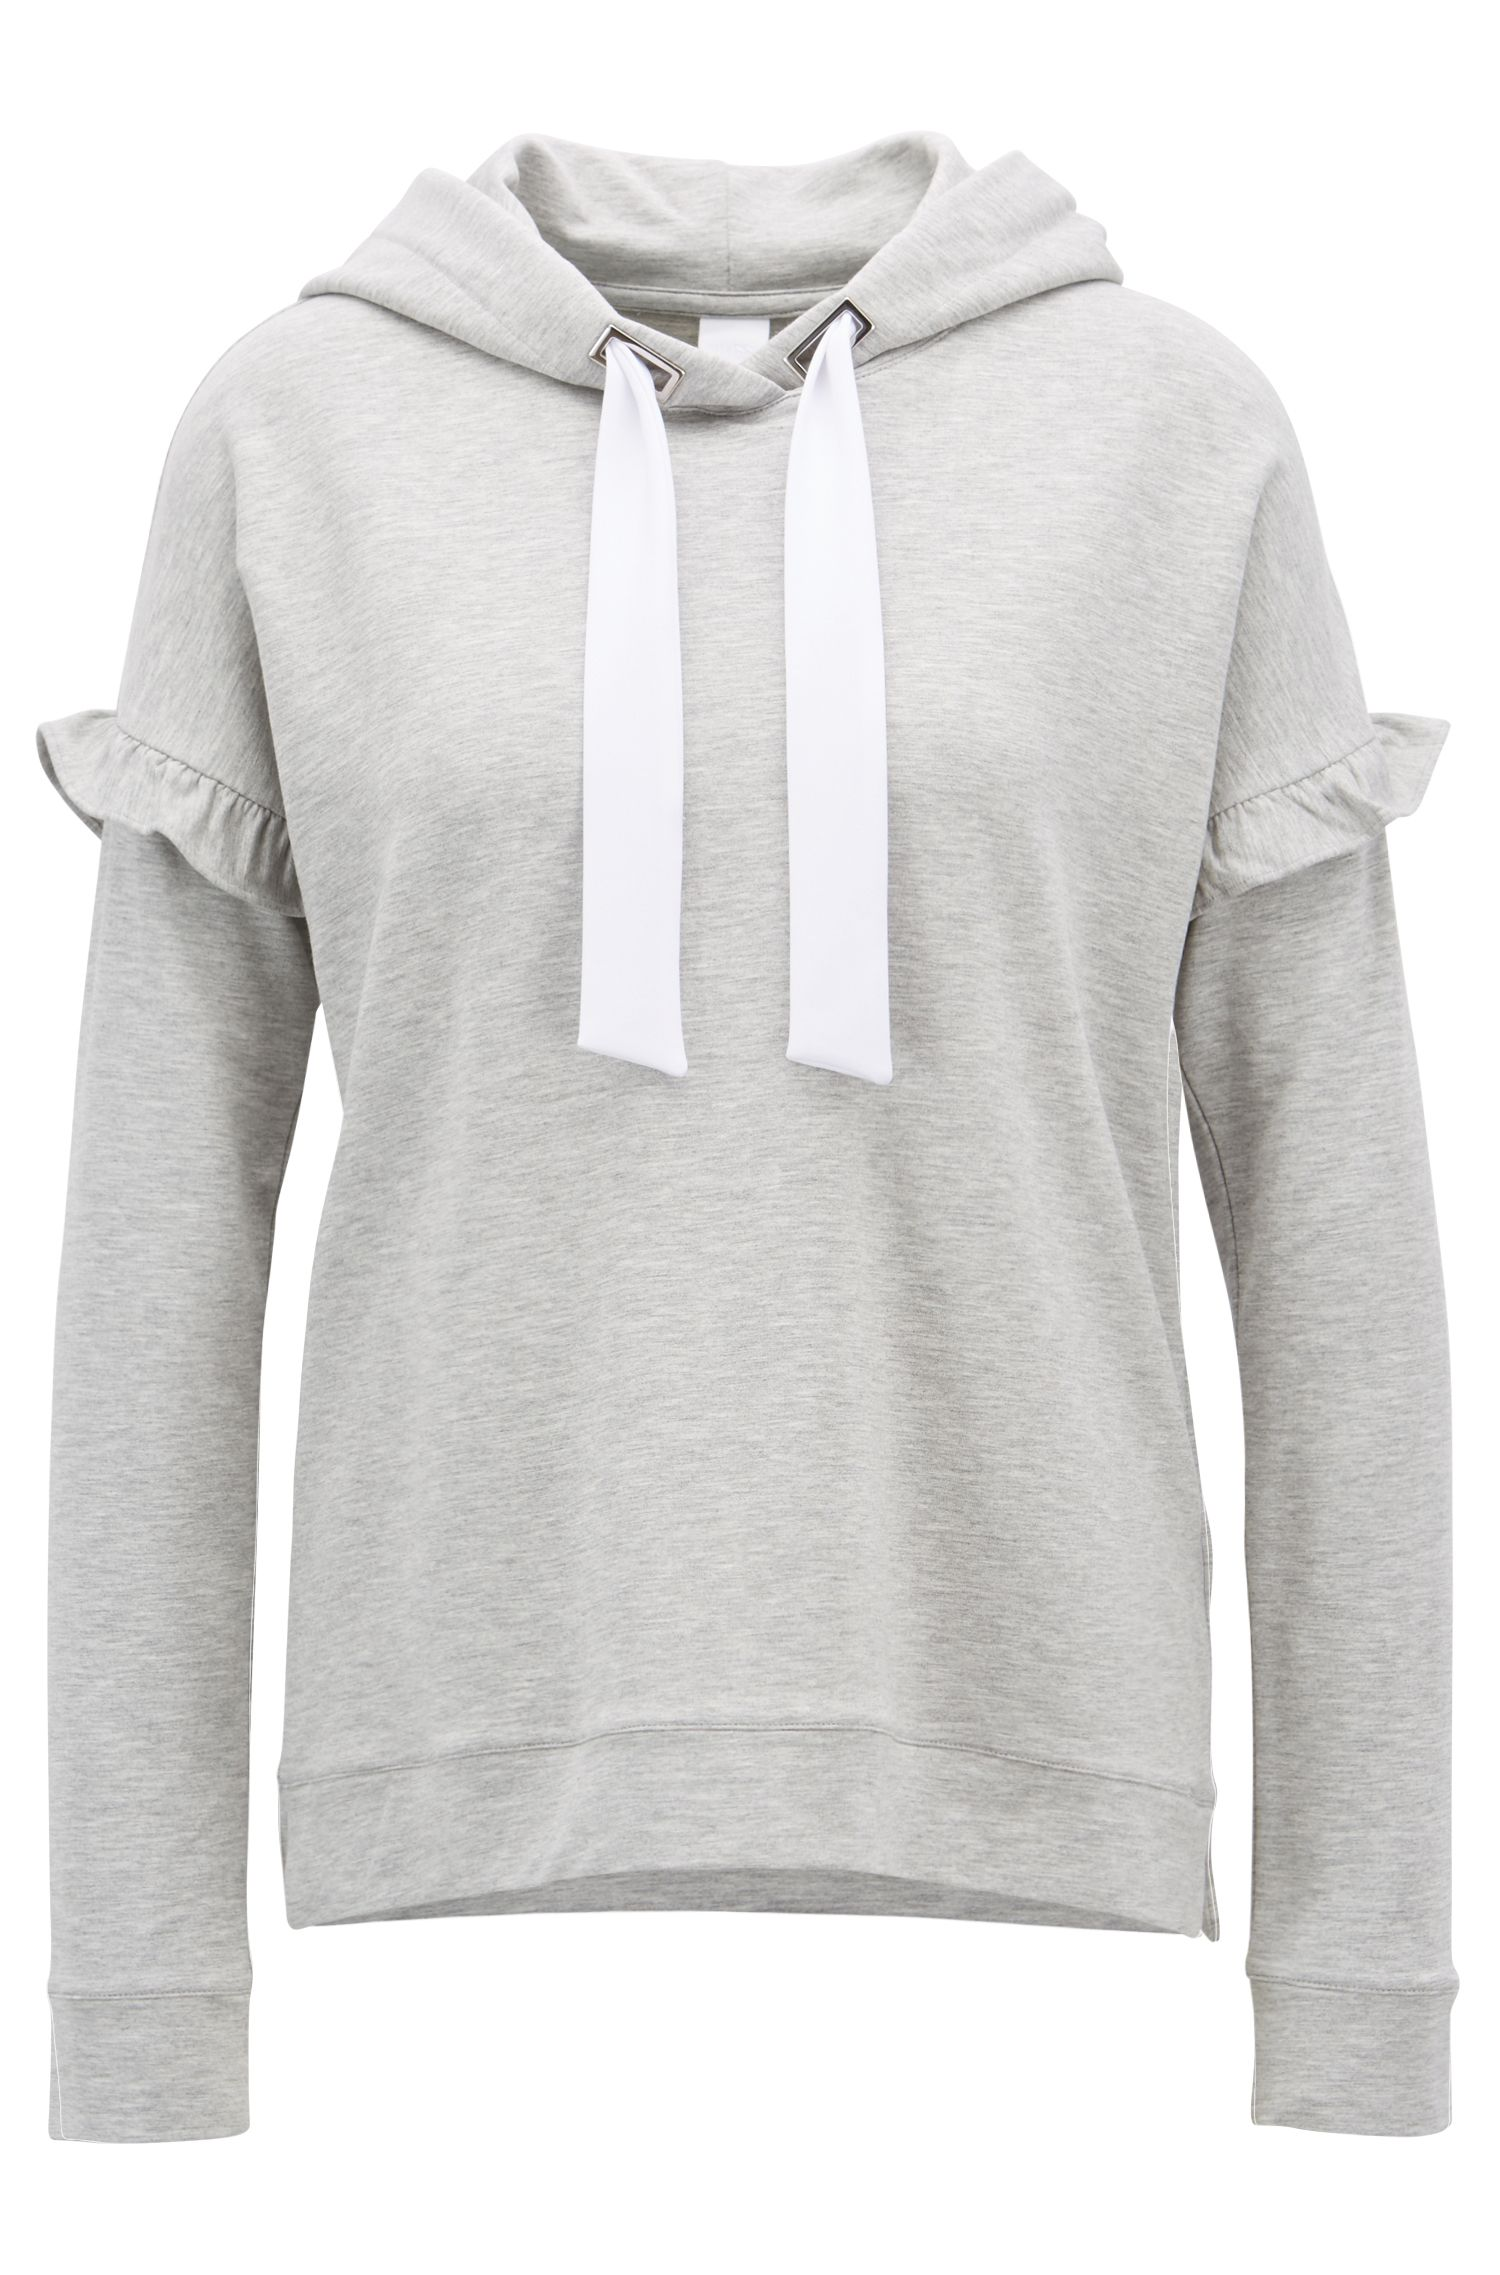 French-terry hooded sweatshirt with ruffle detail